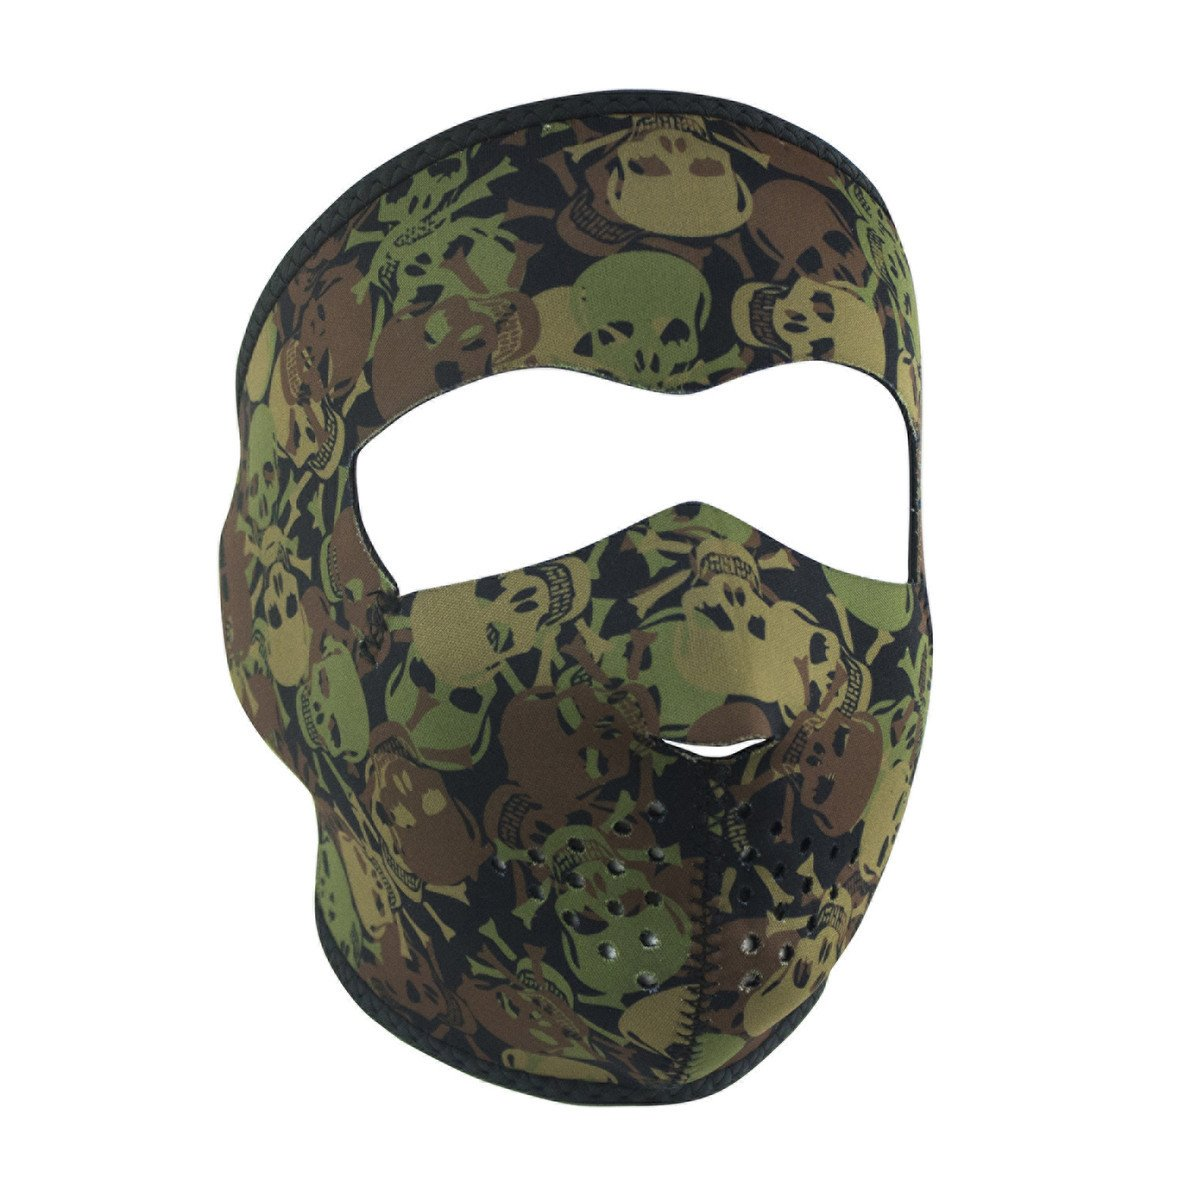 Camo Skull Neoprene Full Face Mask - SKU WNFM418-HI